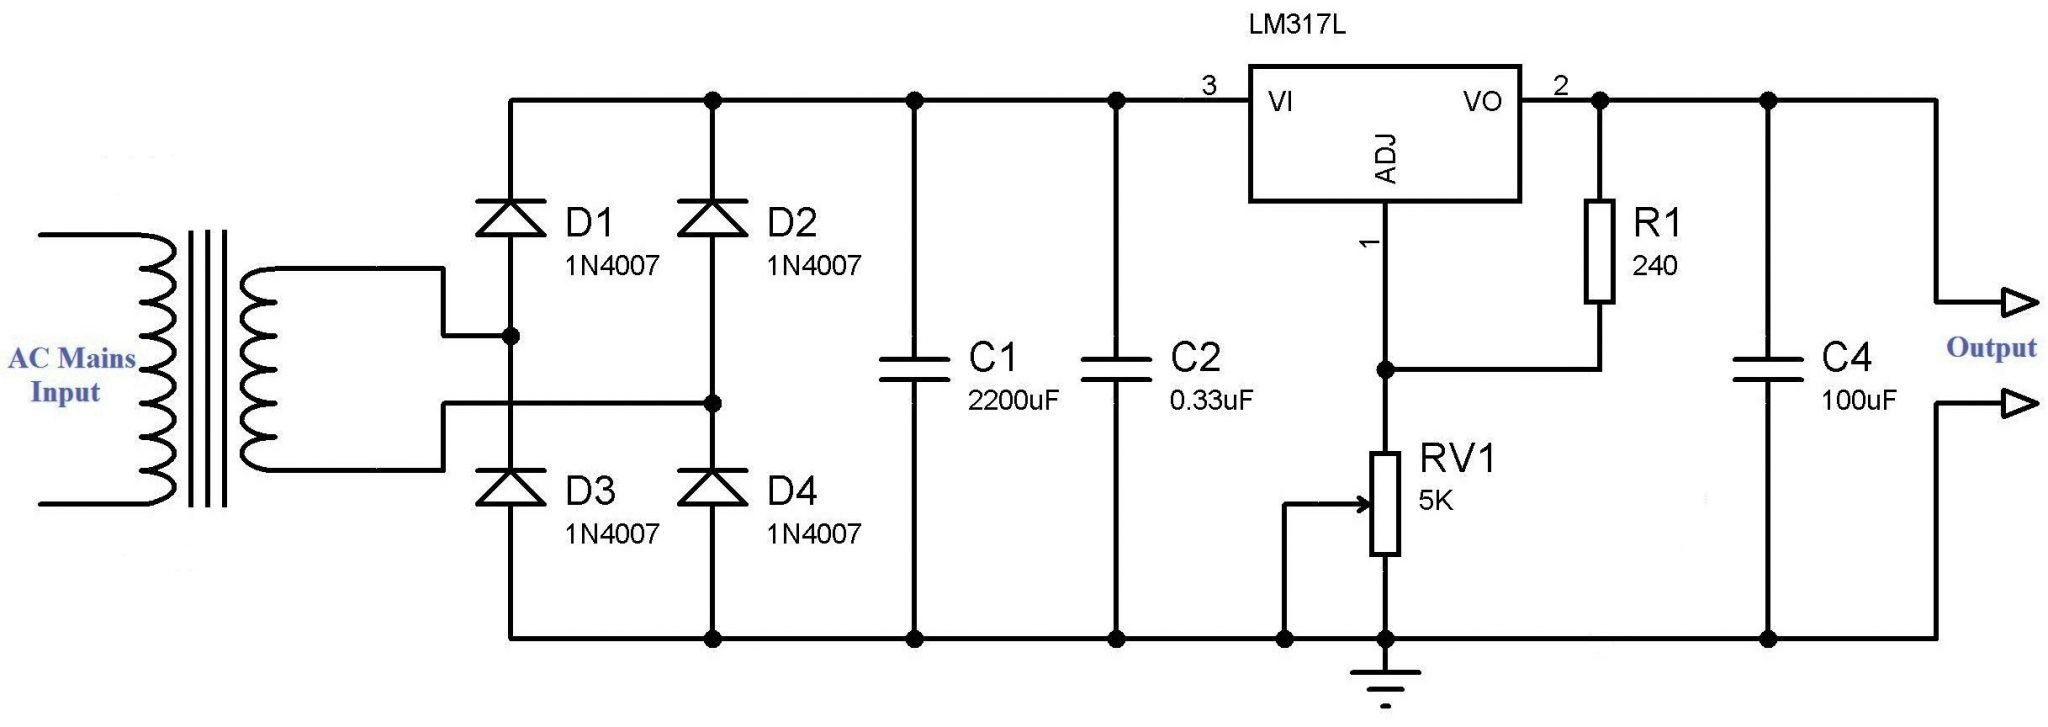 Variable power supply using lm voltage regulator